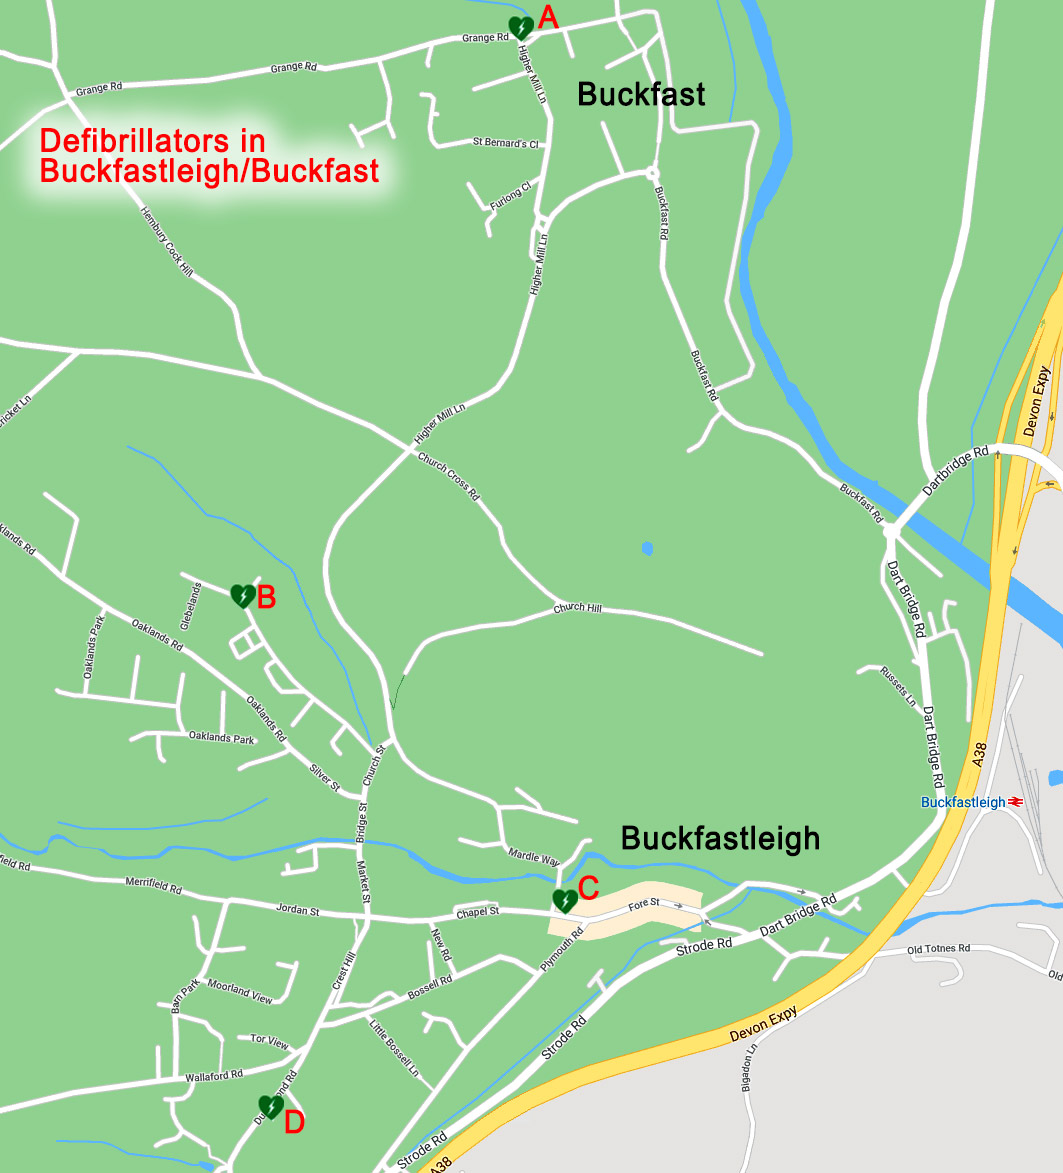 Map showing 4 defibrillator locations in Buckfastleigh and Buckfast